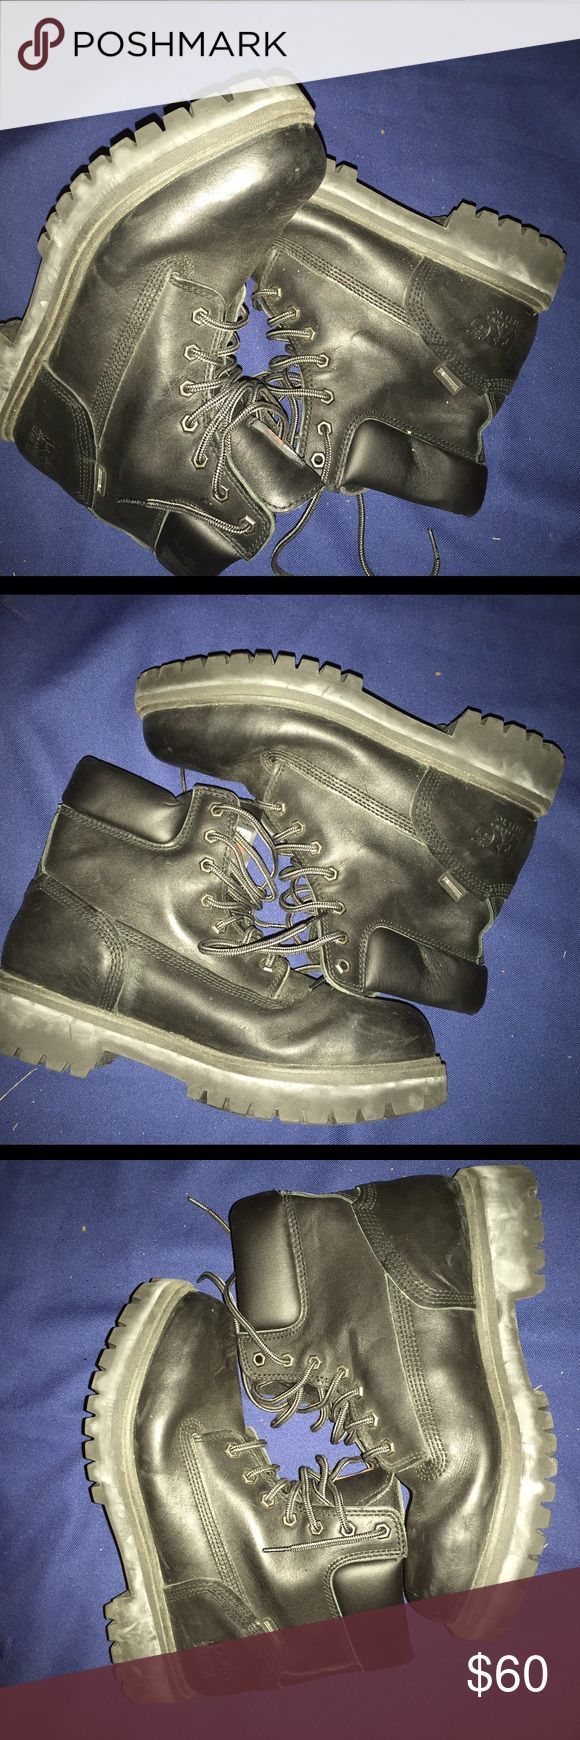 Timberland Pro Series steel Toe waterproof size 10 Just like new Timberland Shoes Boots